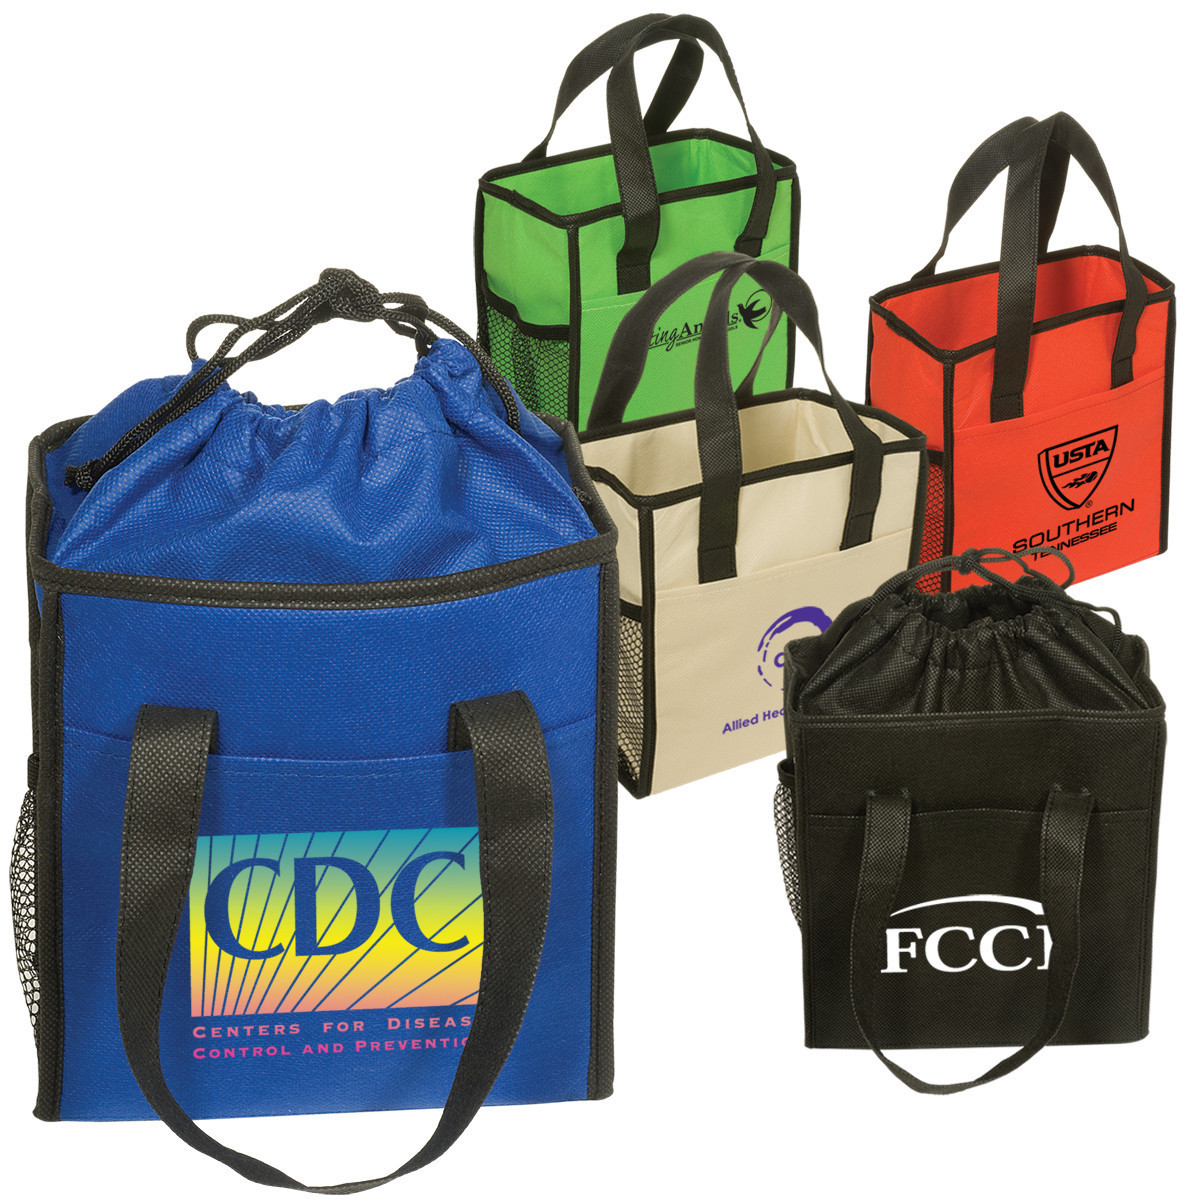 210D polyester promotional drawstring bag